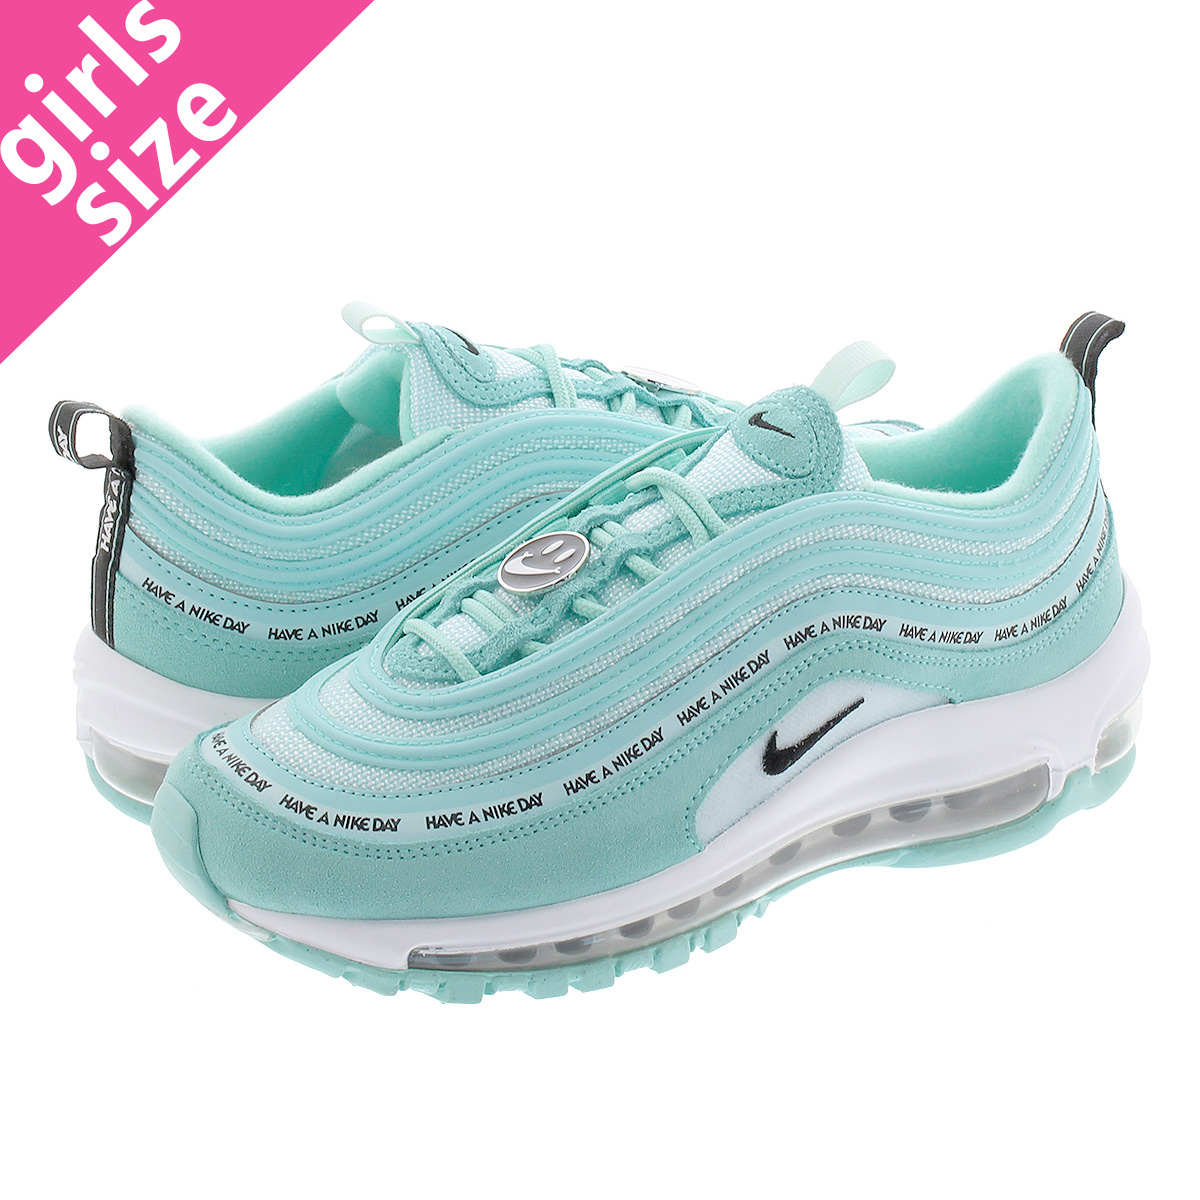 NIKE AIR MAX 97 SE GS 【HAVE A NIKE DAY】 ナイキ エア